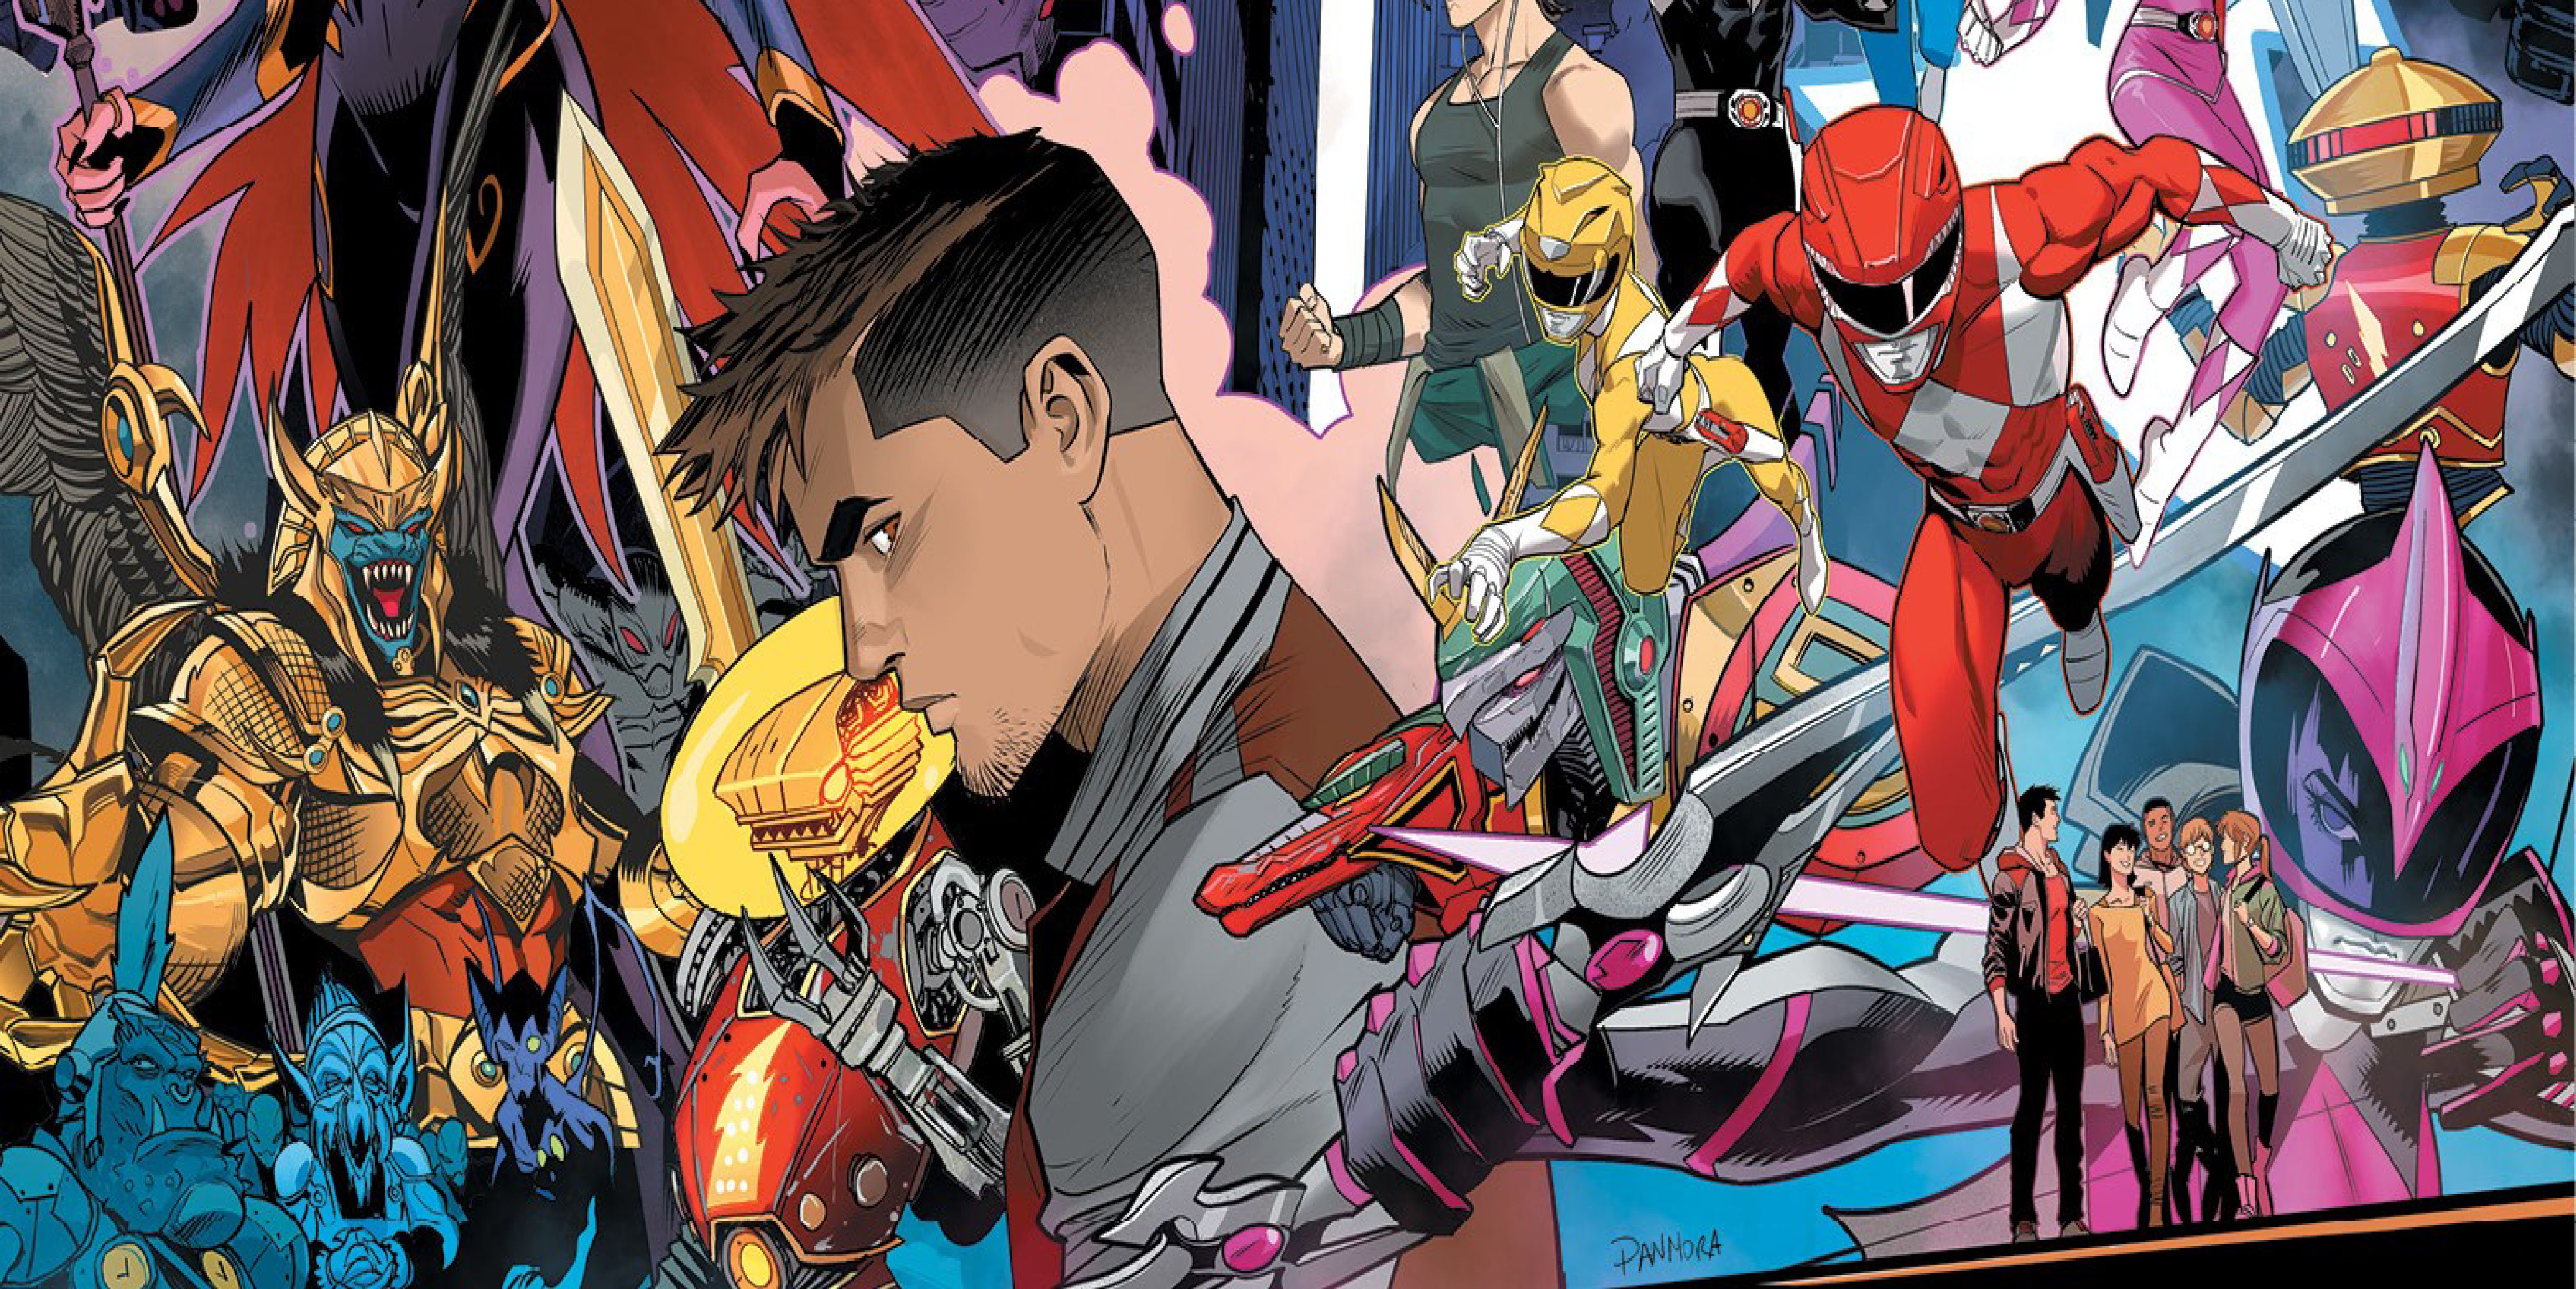 Go Go Power Rangers: Forever Rangers #1 Is Oddly Paced, But Satisfying